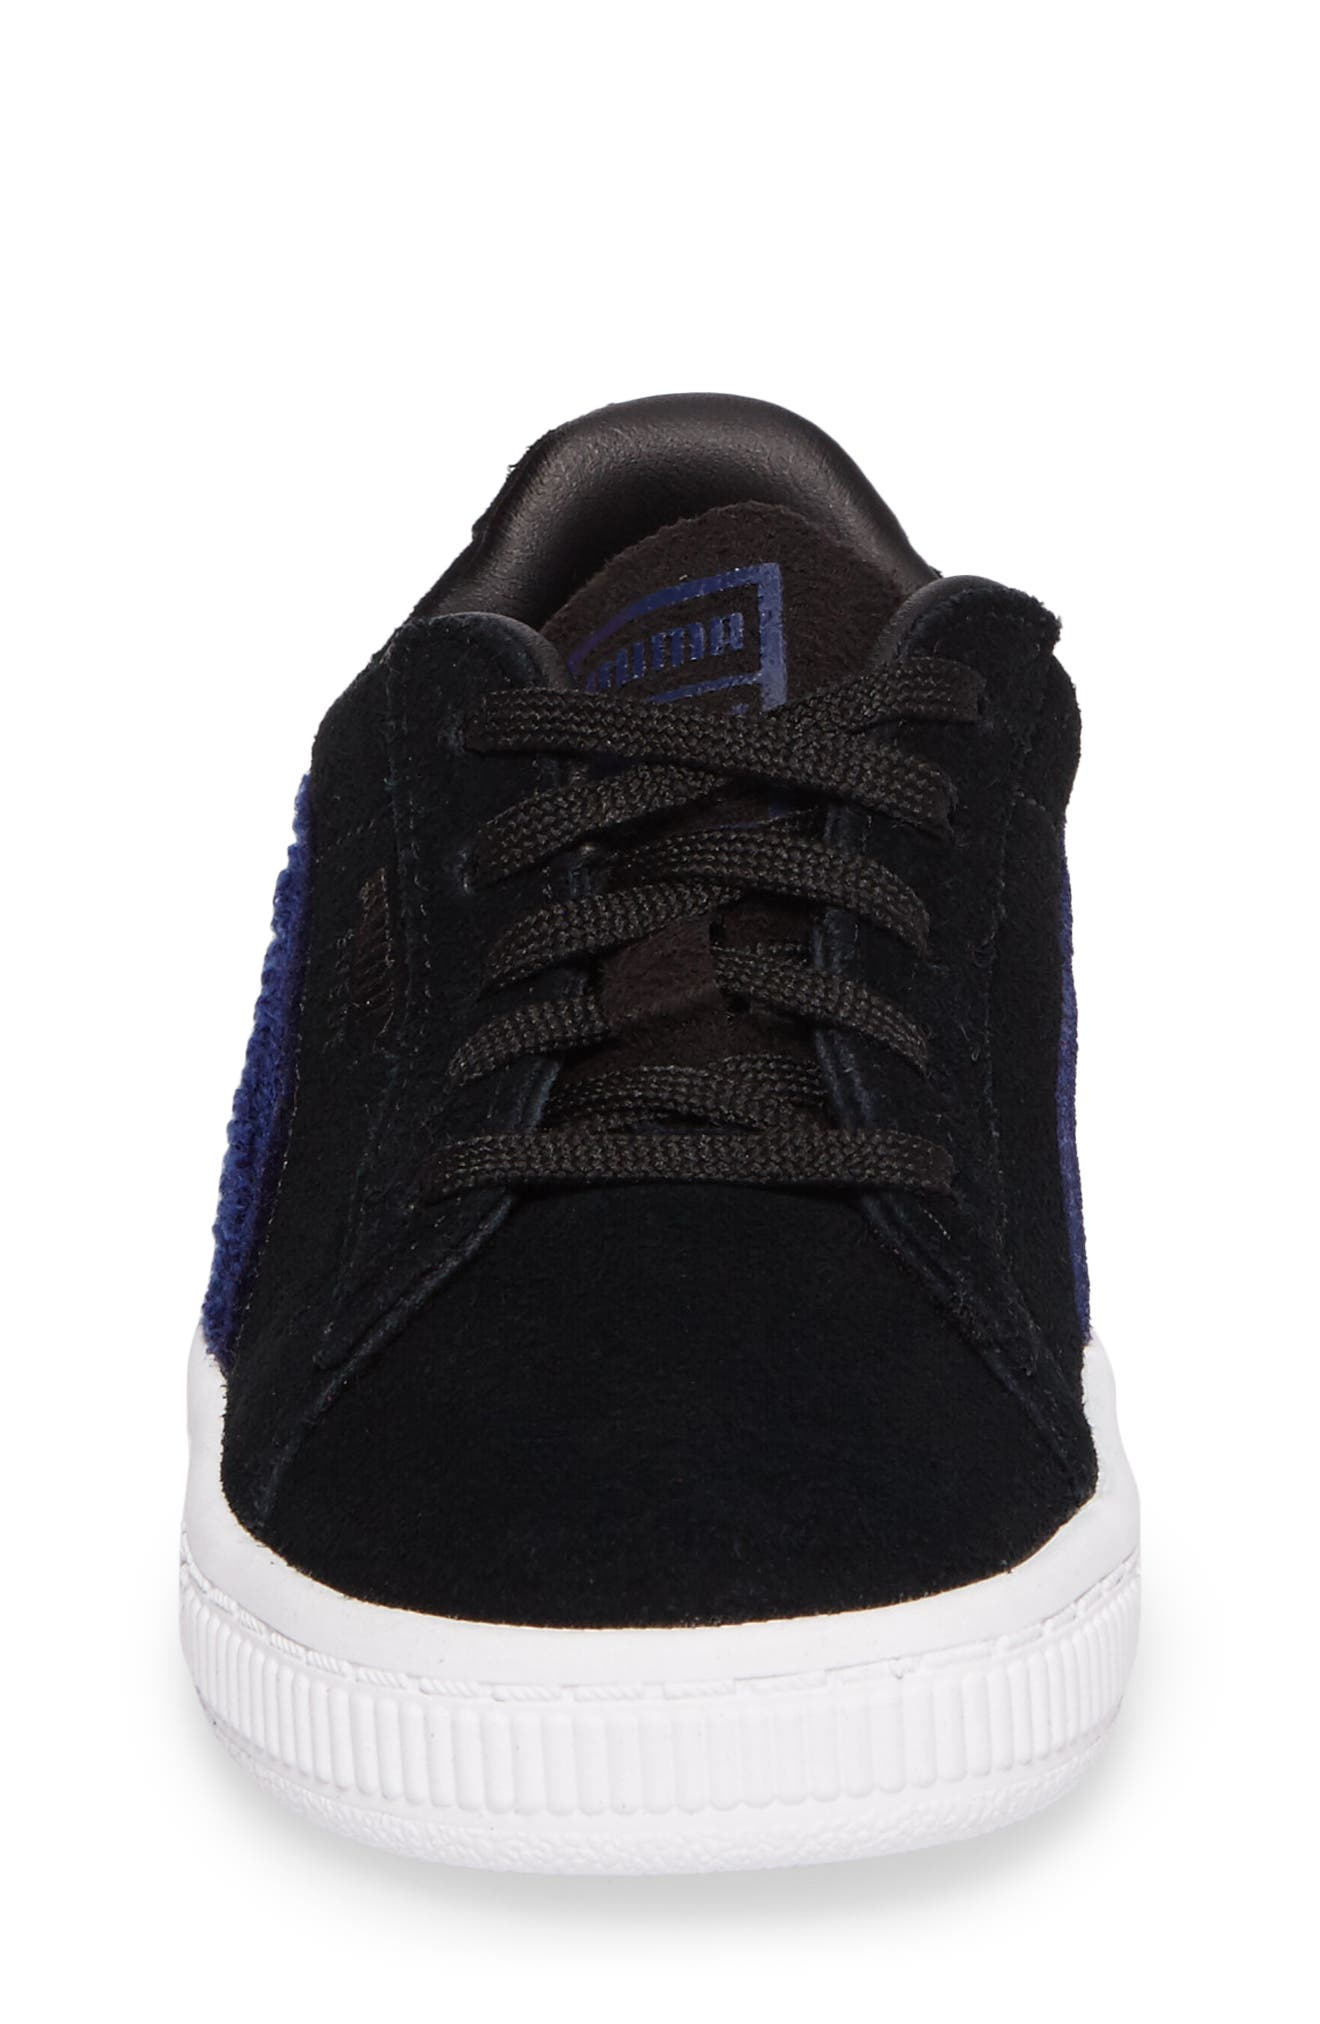 Classic Terry Sneaker,                             Alternate thumbnail 4, color,                             001